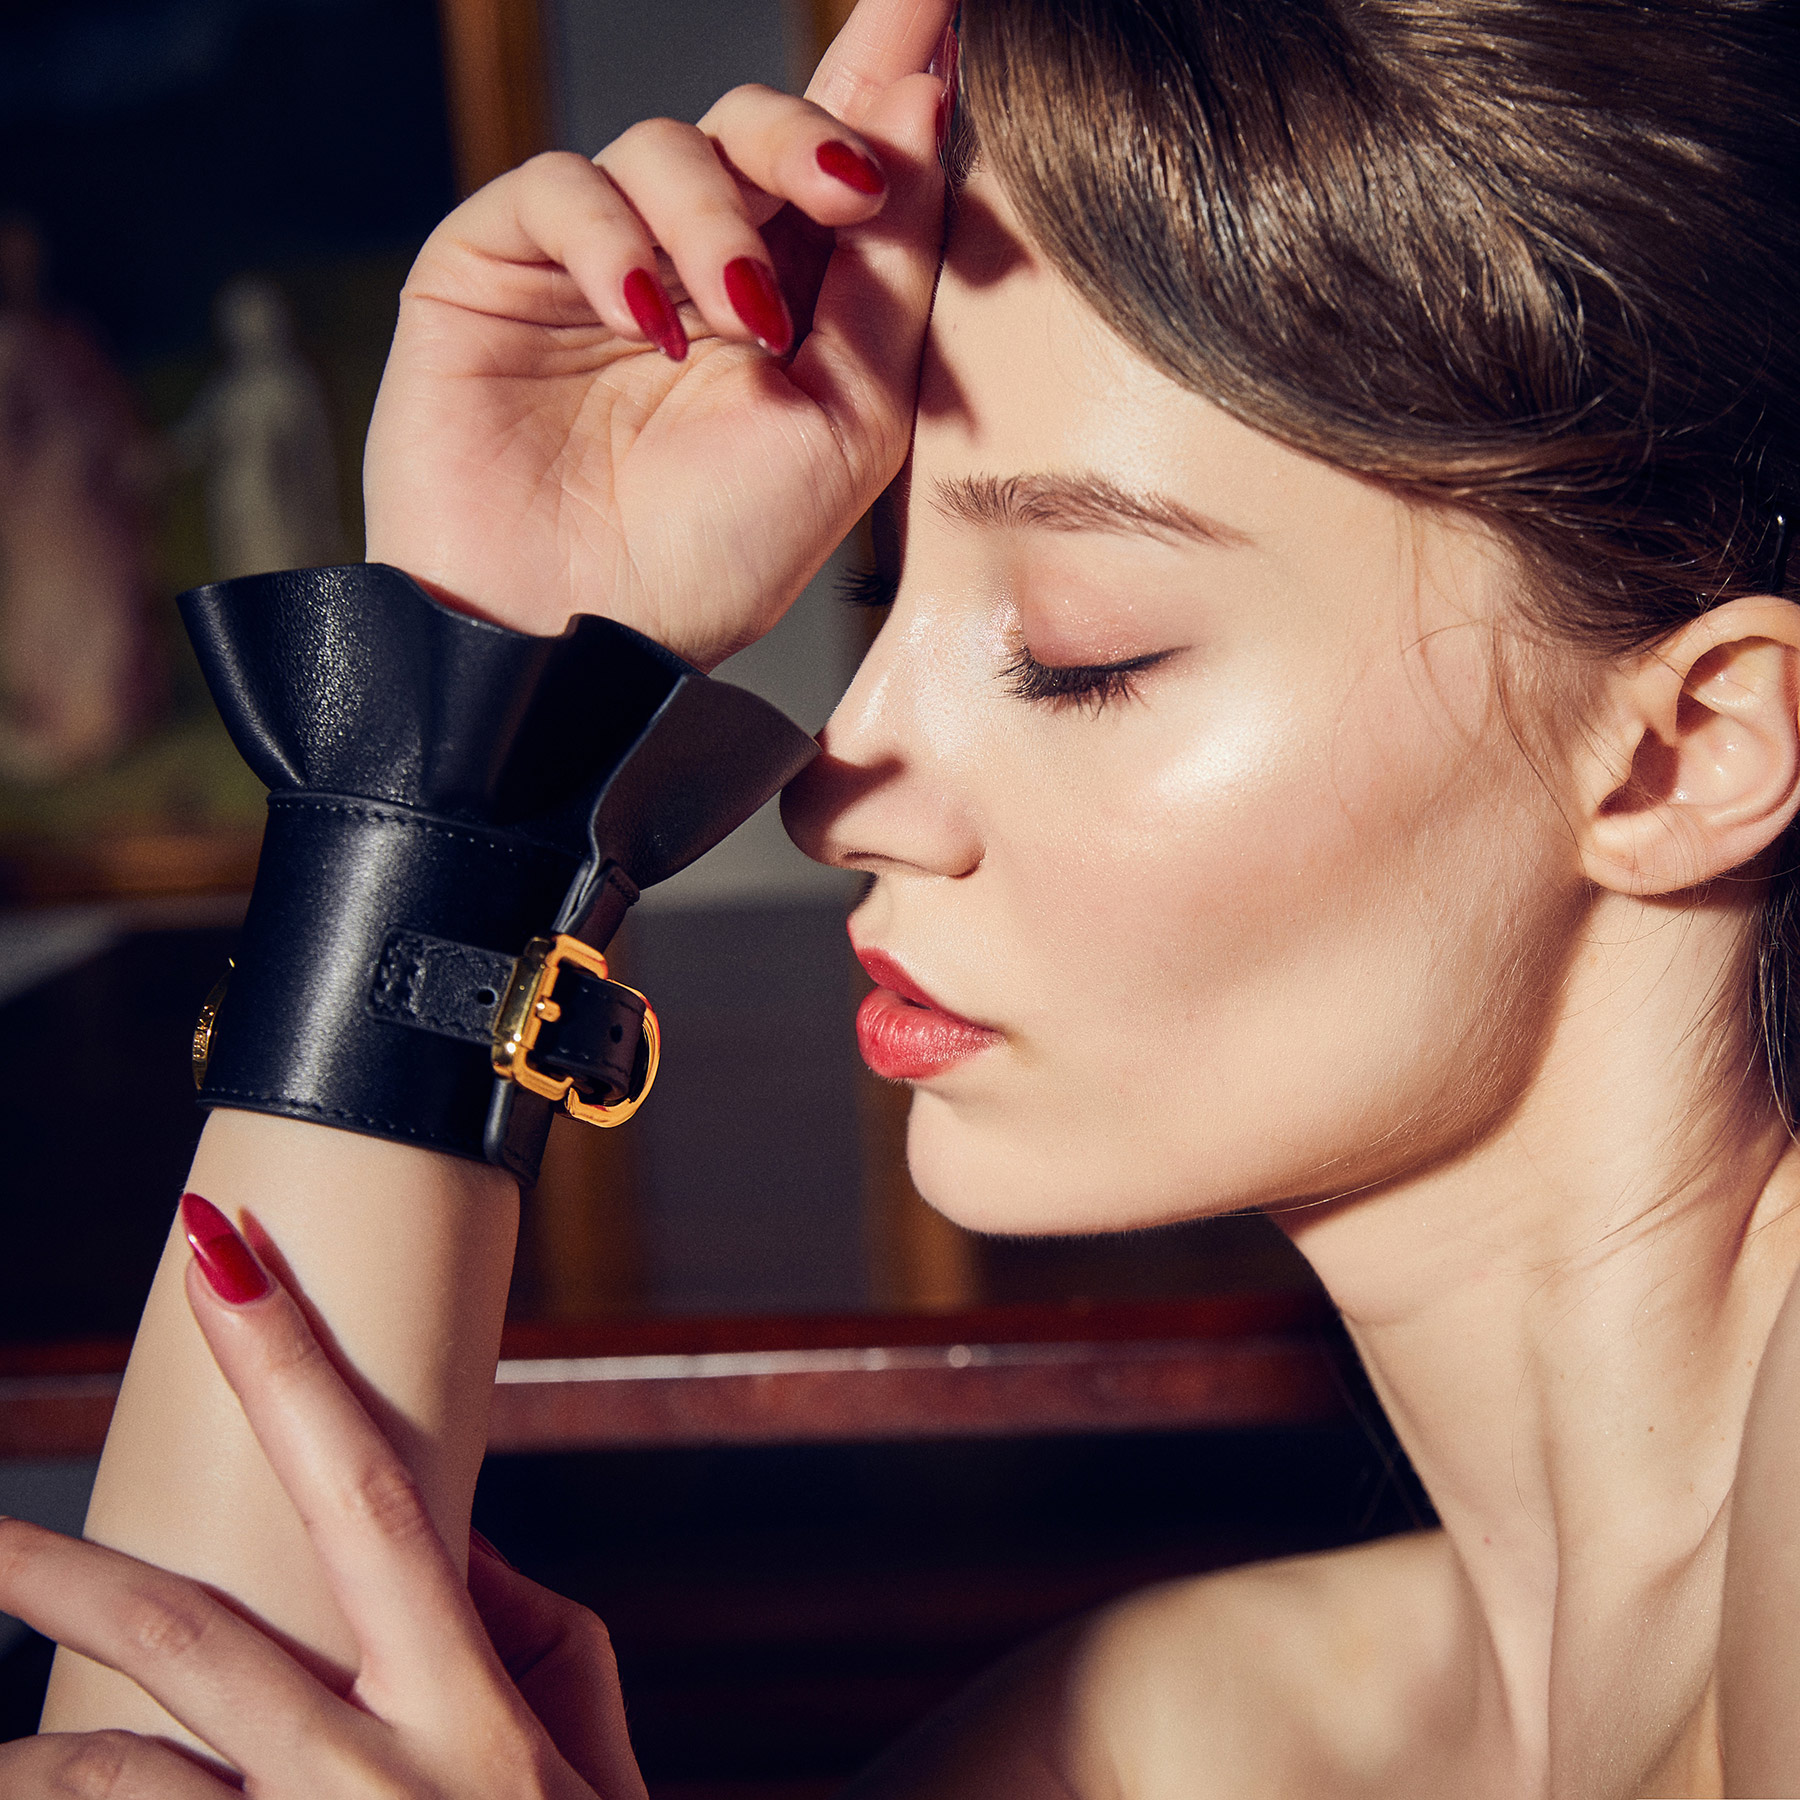 ZALO & UPKO Doll Designer Collection Leather Lace-Like Handcuffs Displayed On Model 2